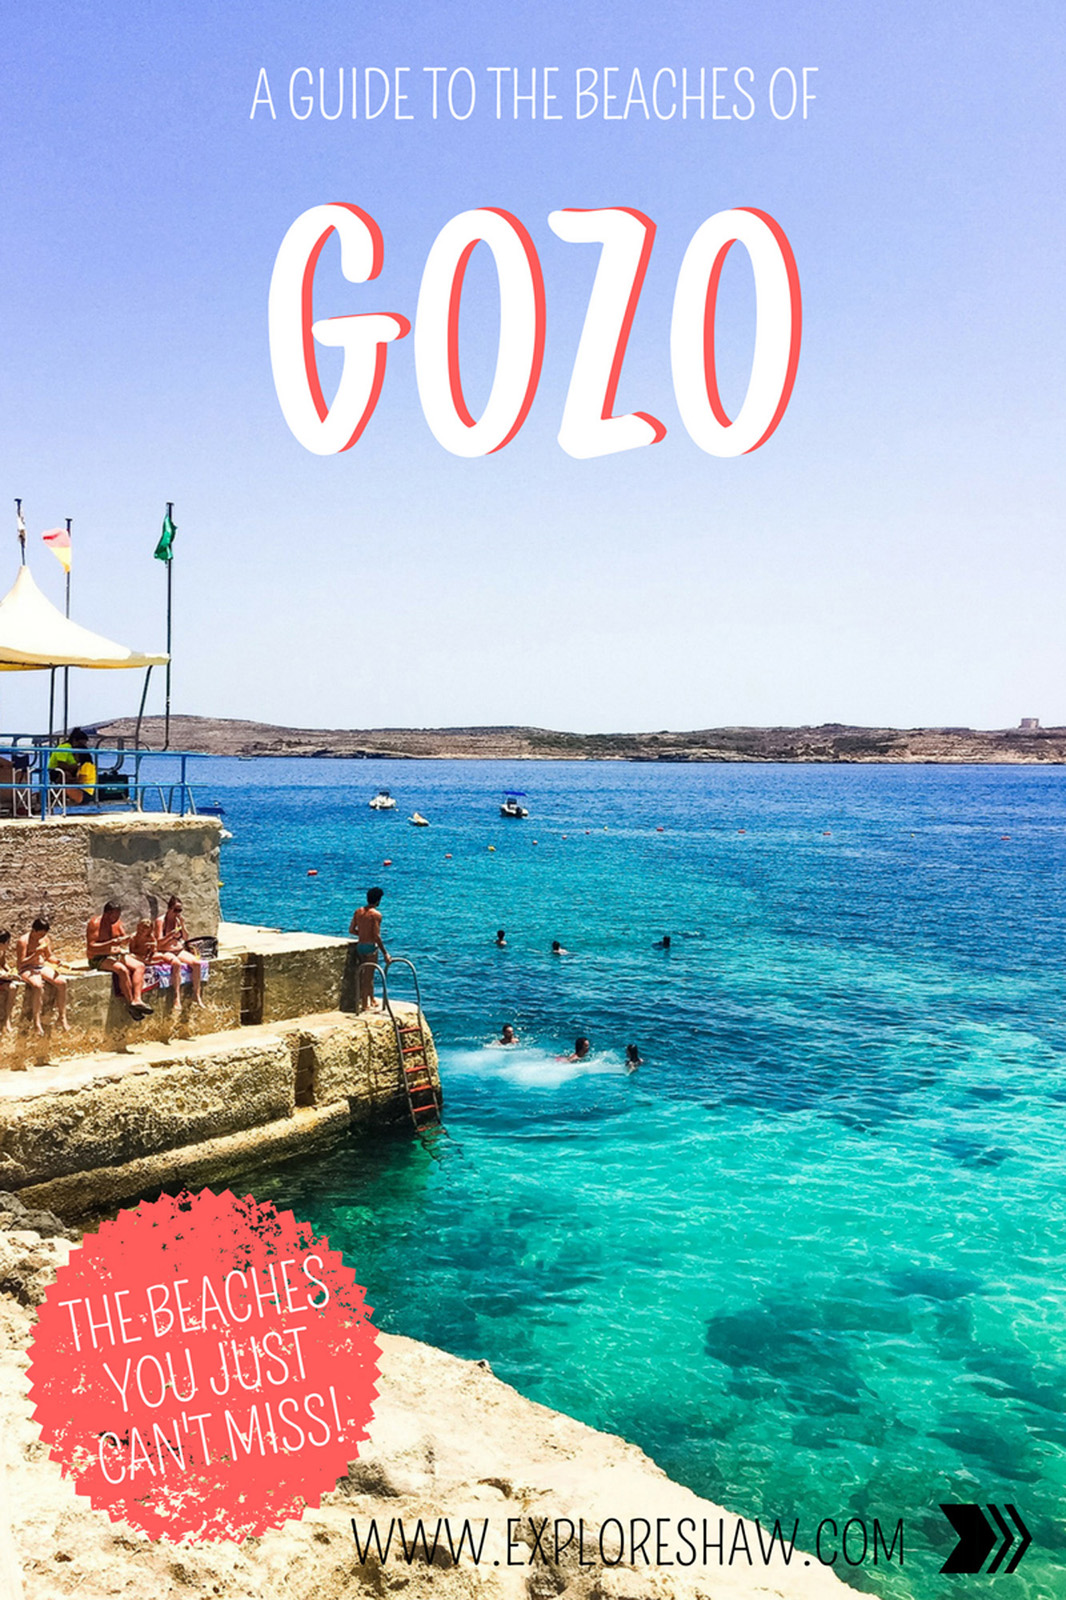 There are so many beautiful beaces on Gozo, and we can help you find them all. Here's our guide on the best beaches around this little island. #Malta #Gozo